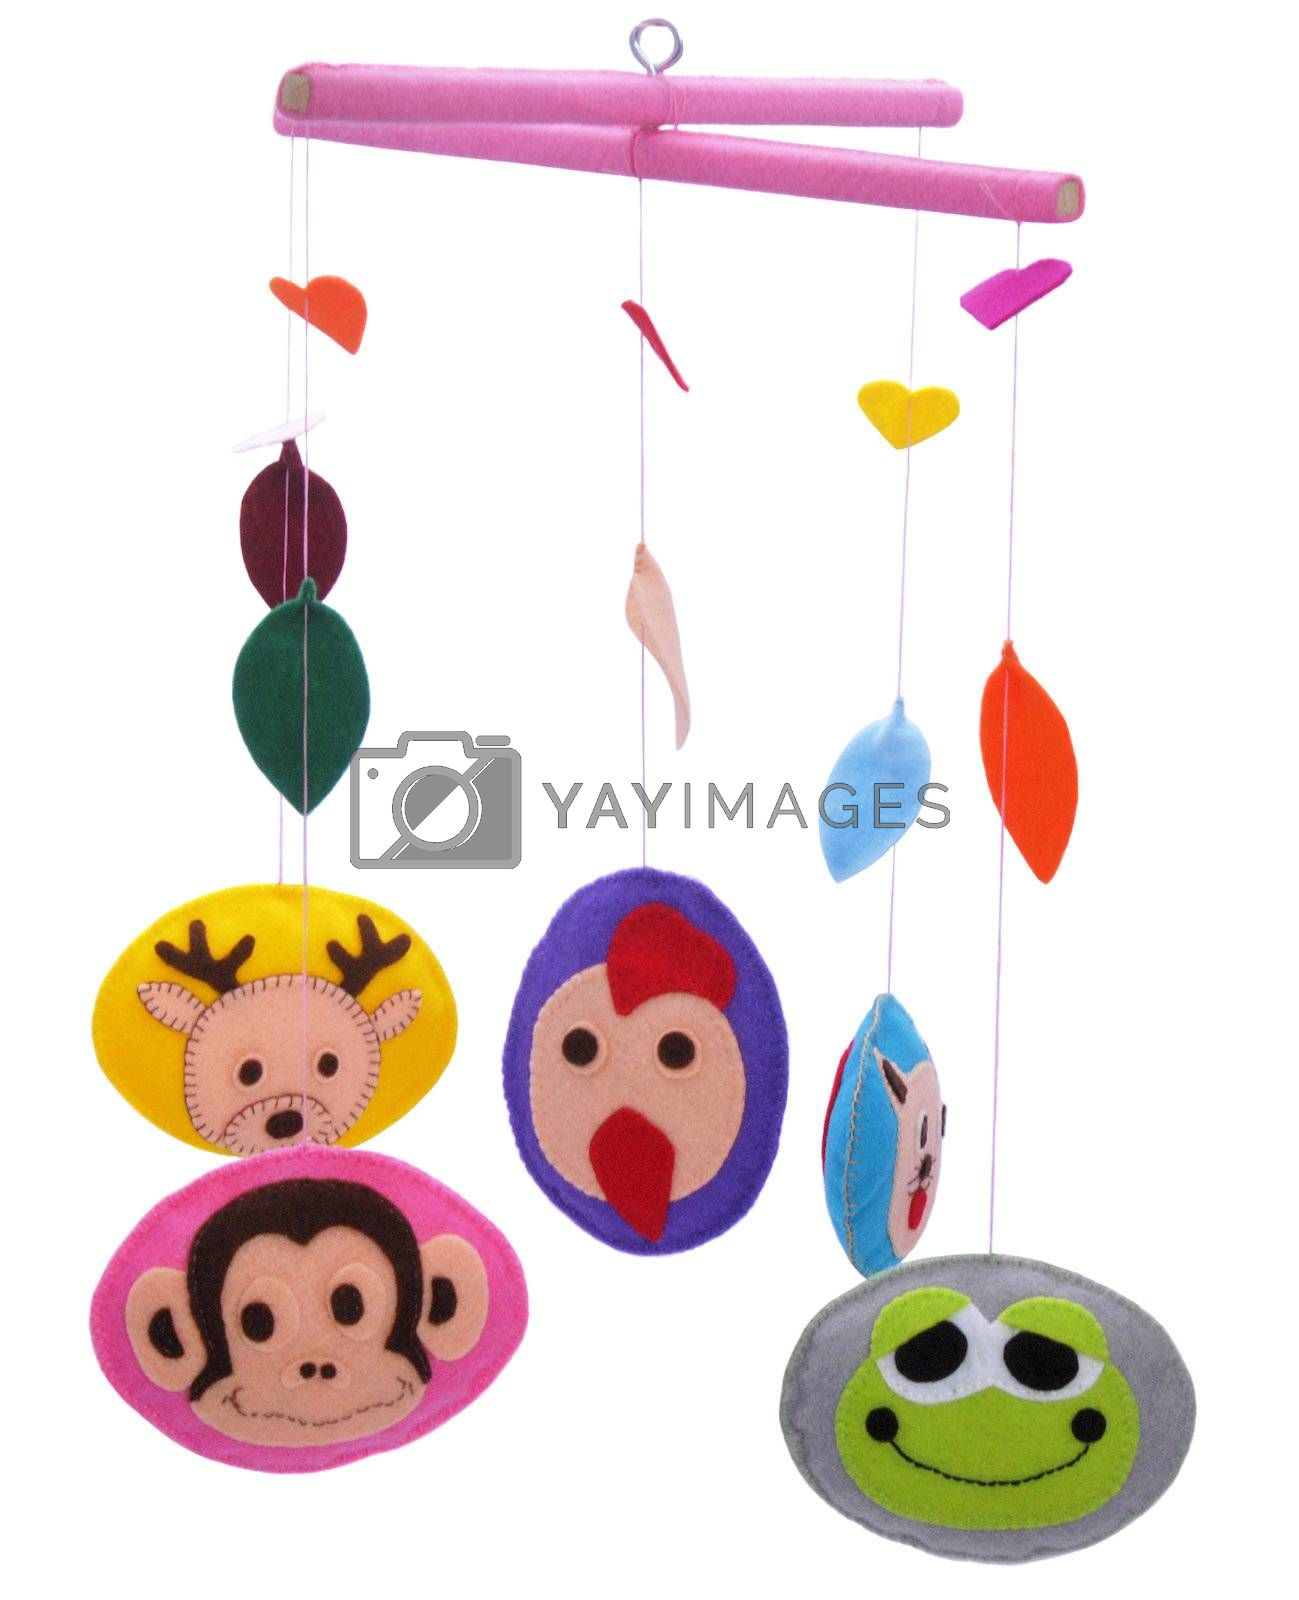 Animals toys by sattva